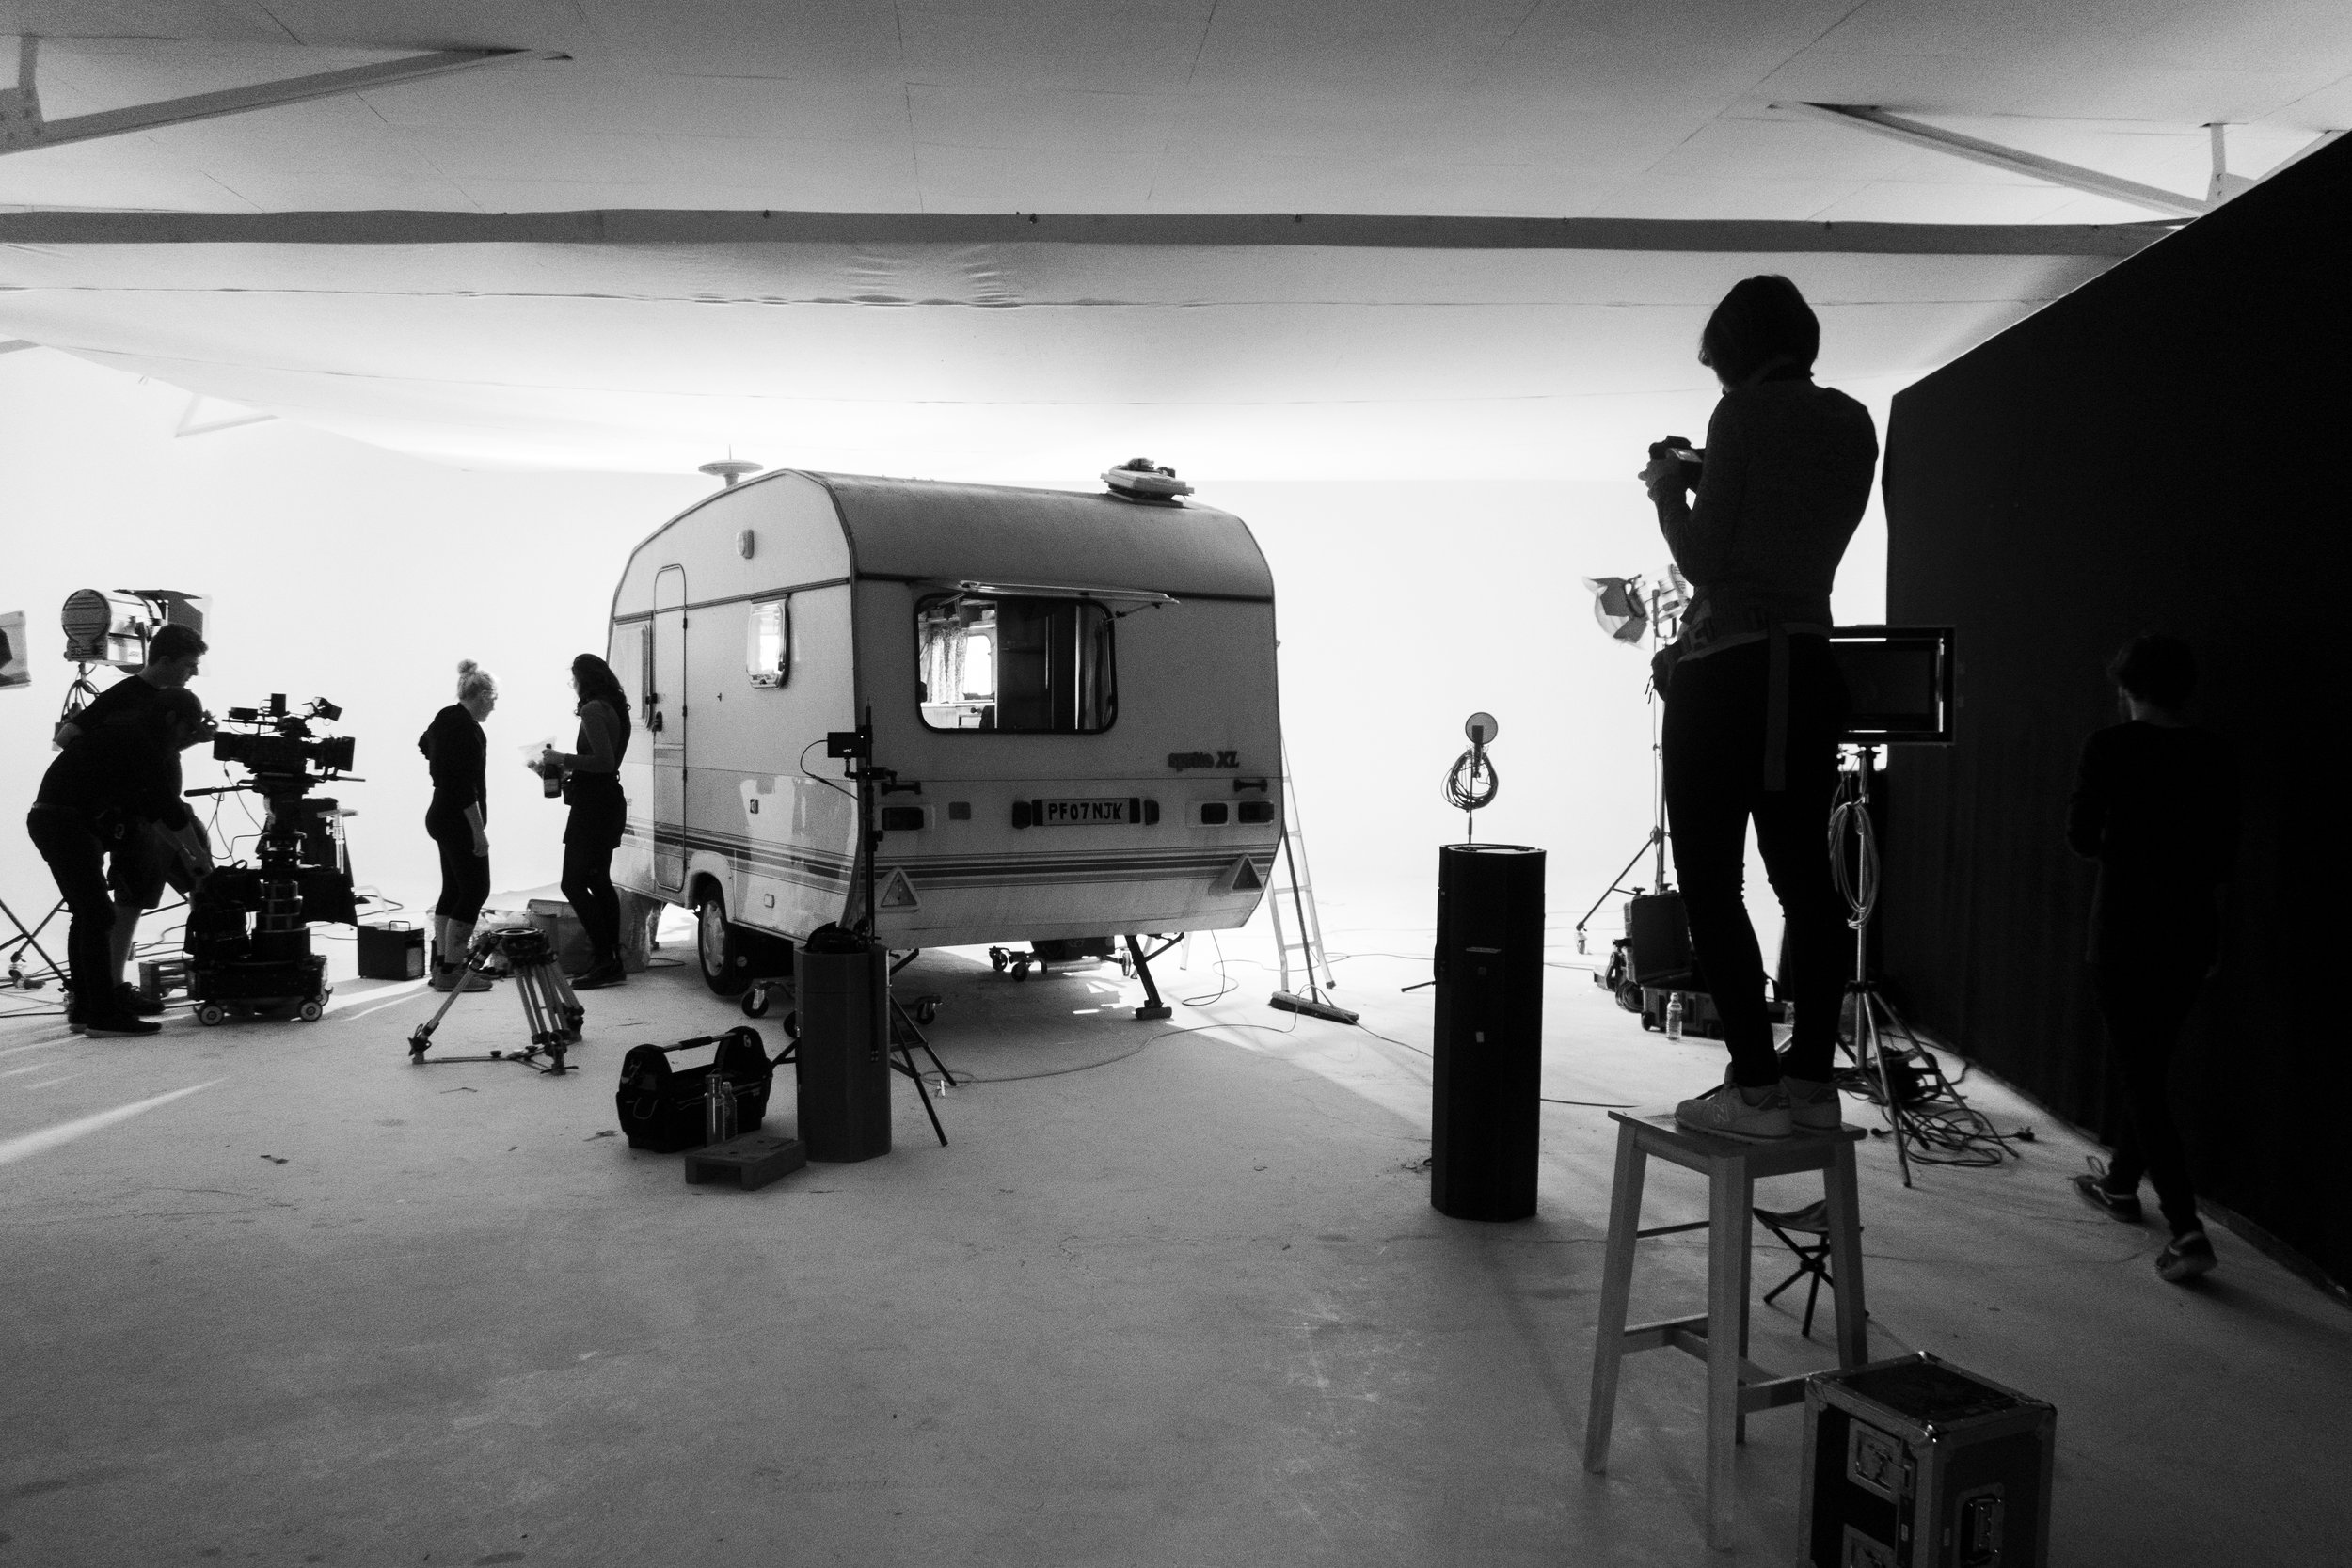 A BTS of me getting a production still from inside the Caravan, cant wait to be able to share the stills from this shoot! (yes I needed a stool to stand on as usual)